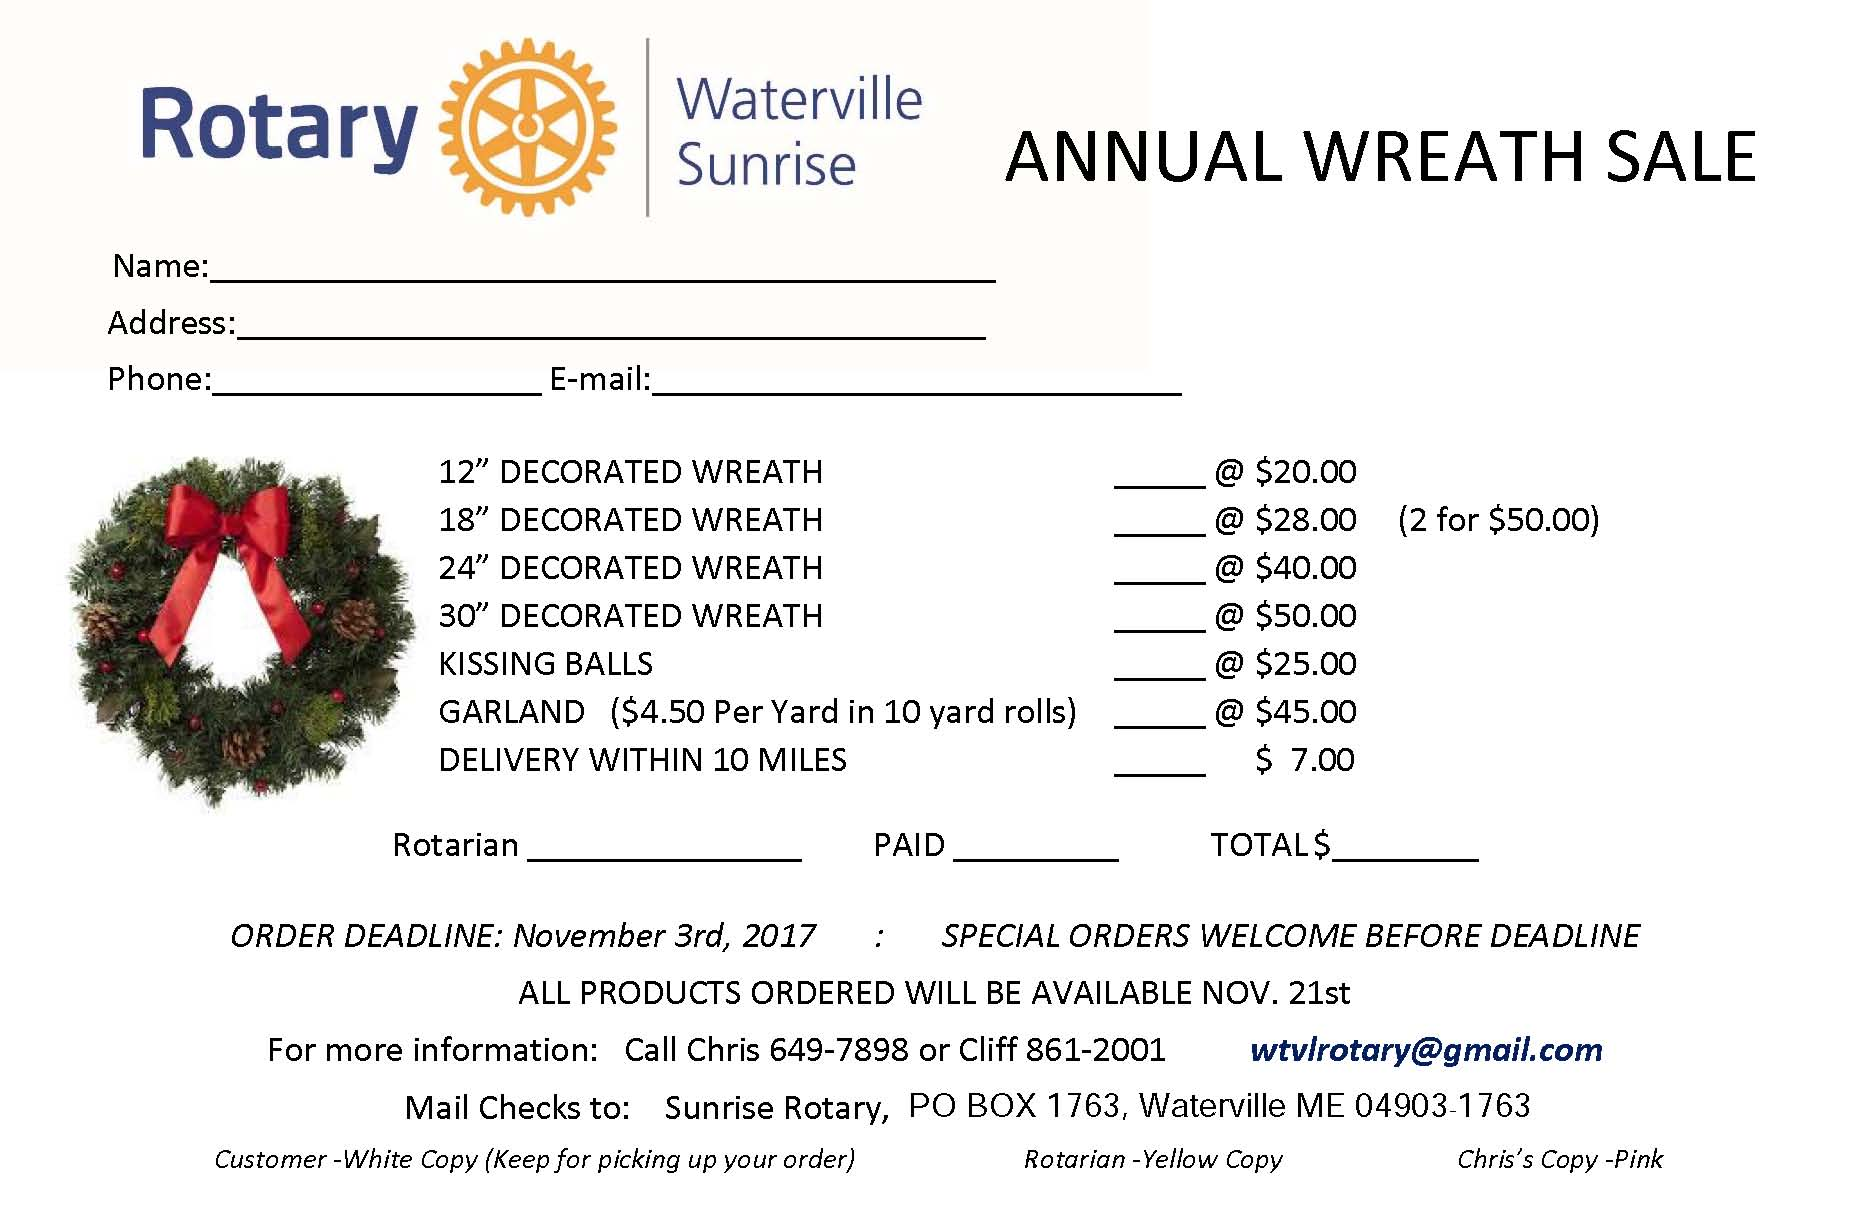 Wreath Order Form | Rotary Club of Waterville Sunrise on gift order form, candle order form, jewelry order form, book order form, easter order form, owl order form, pumpkin order form, garden order form, white order form, fabric order form, cookies order form, door order form, party order form, turkey order form, spring order form, bag order form, diy order form, pillow order form, craft order form, rose order form,